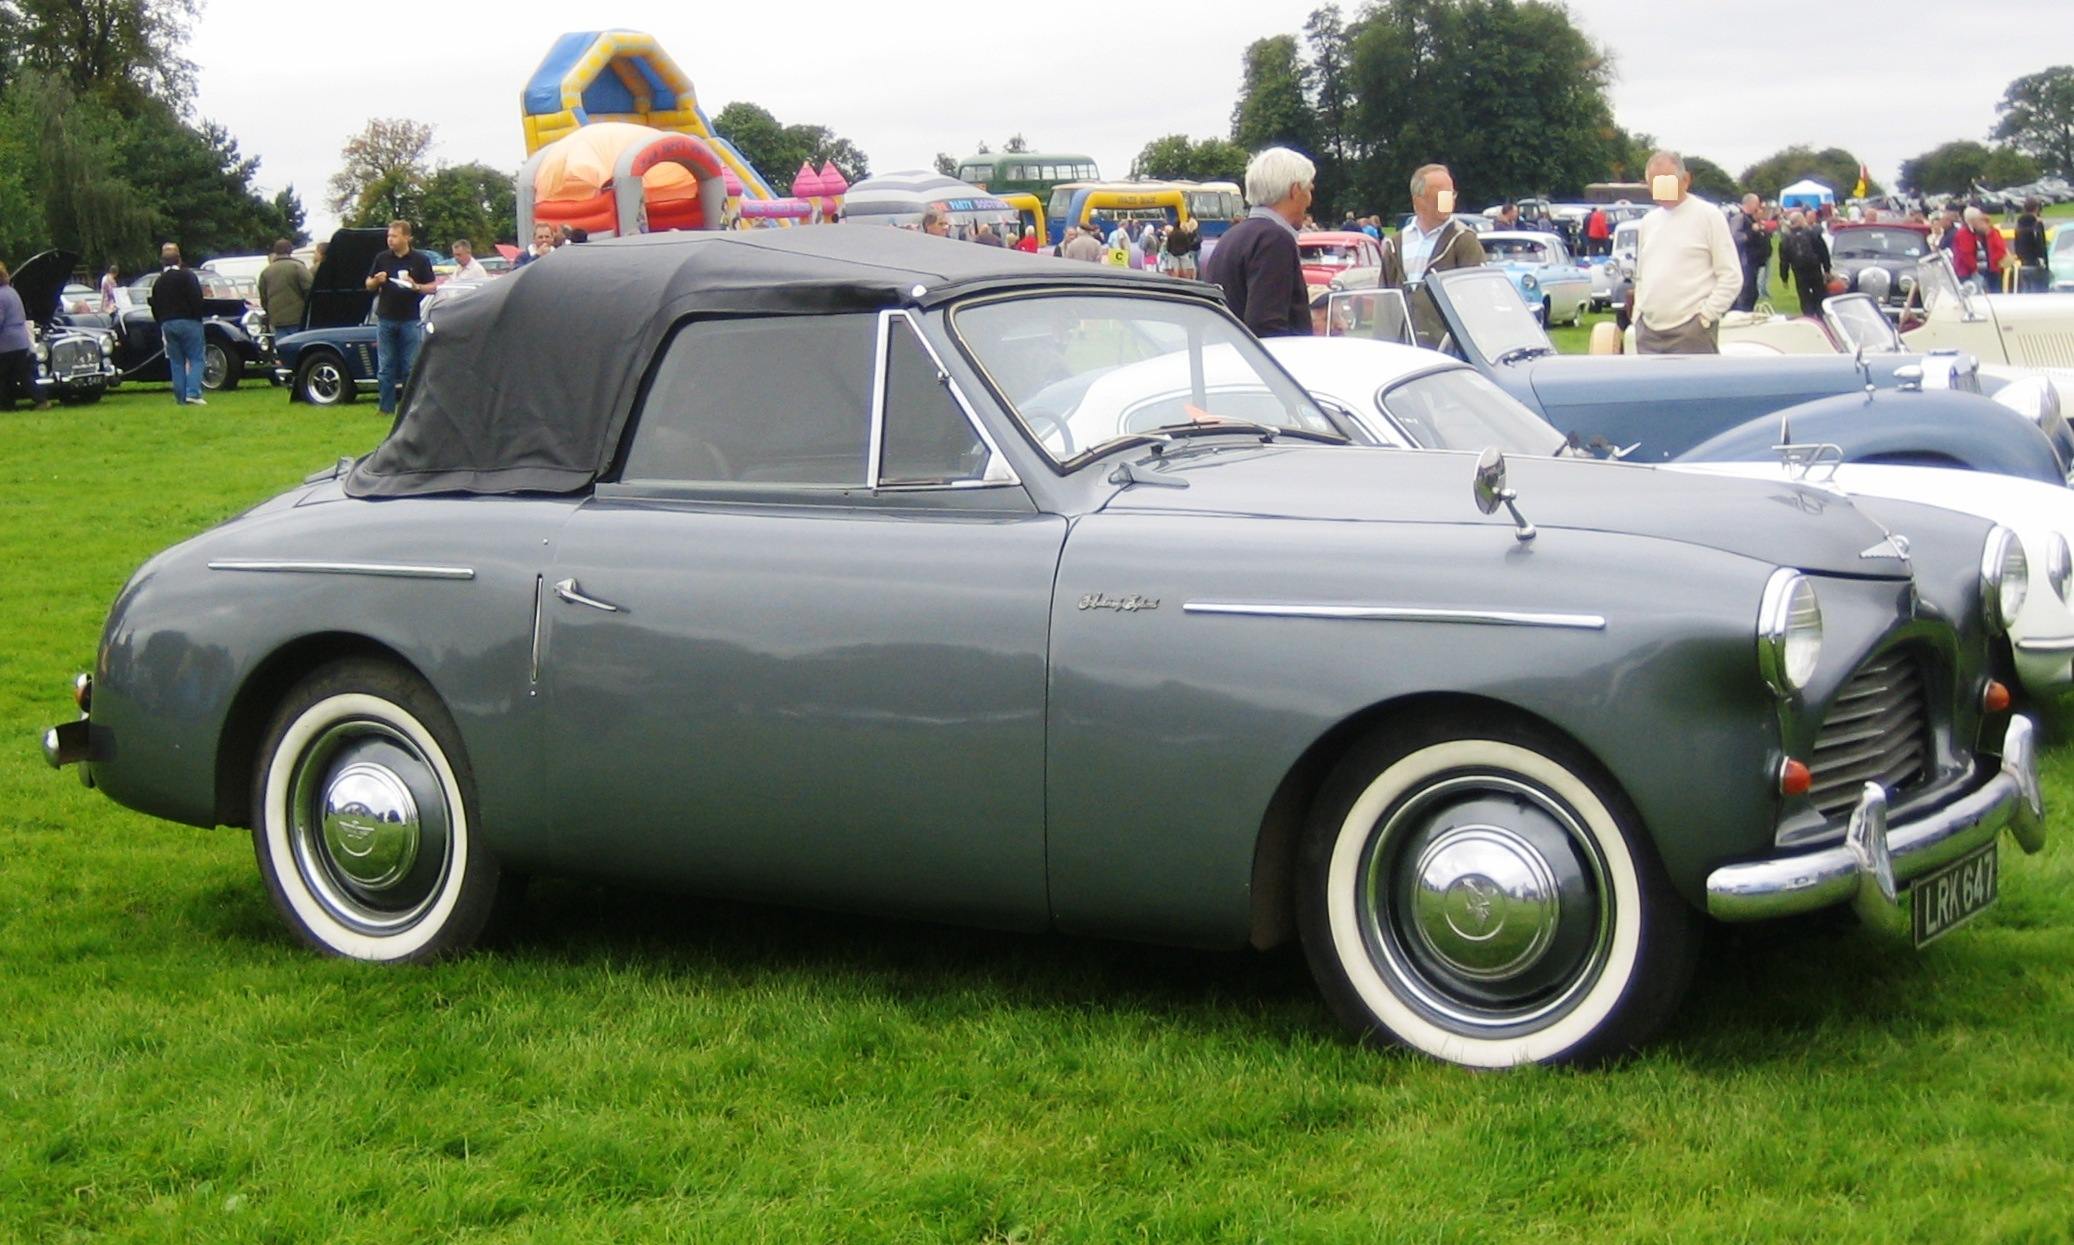 Aluminum bodied Austin A40 Roadster circa 1951.  Image care of Charles01 via Wikipedia